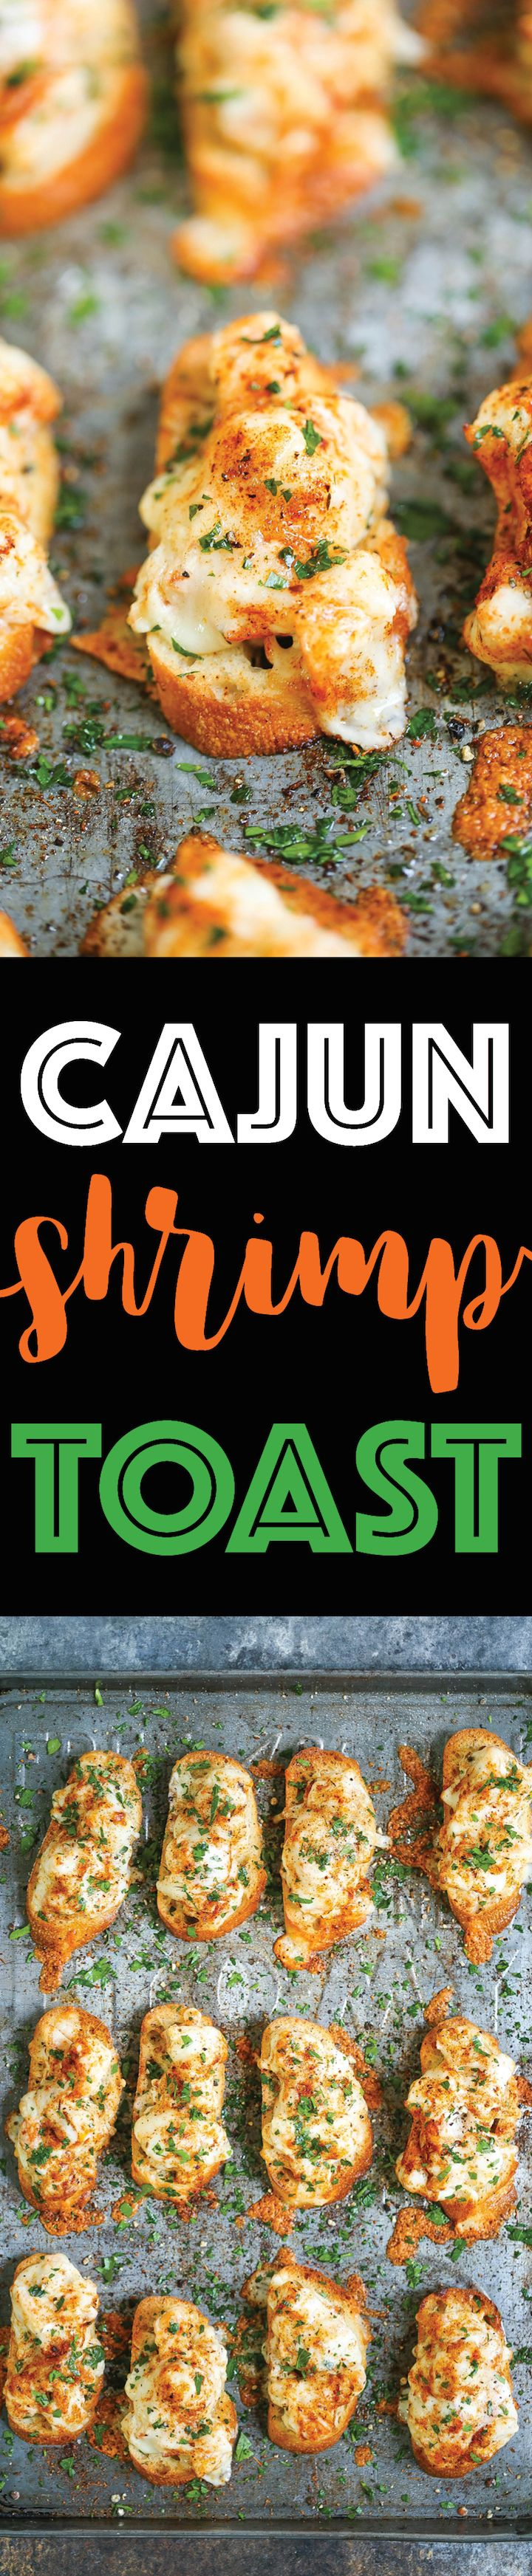 Cajun Shrimp Toast is a must-have at your next tailgate!